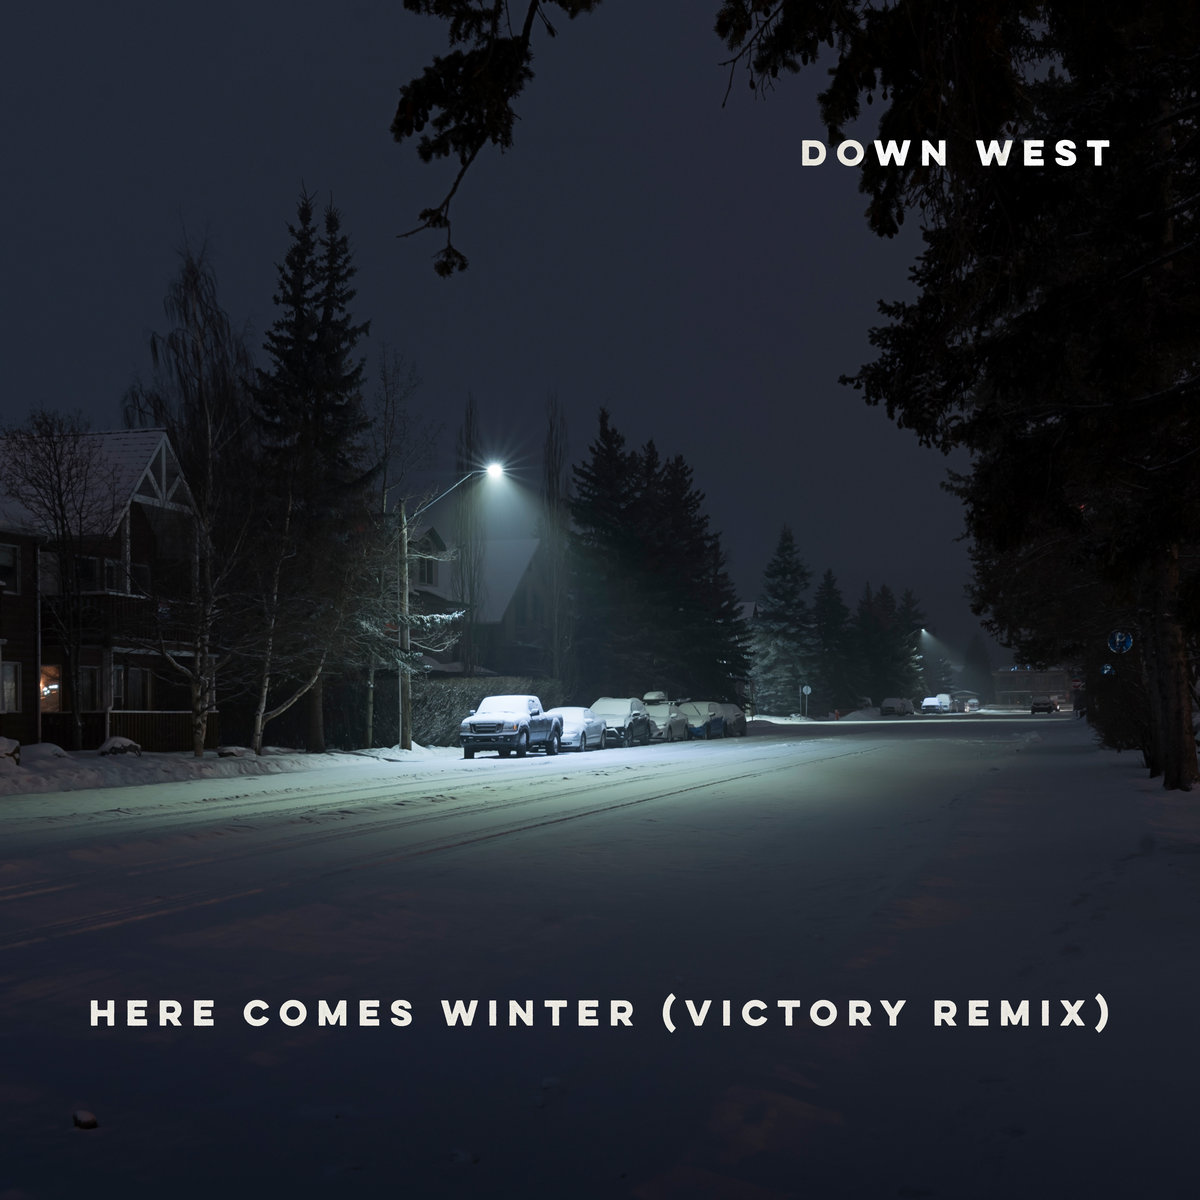 Here Comes Winter (Victory Mix) by Down West